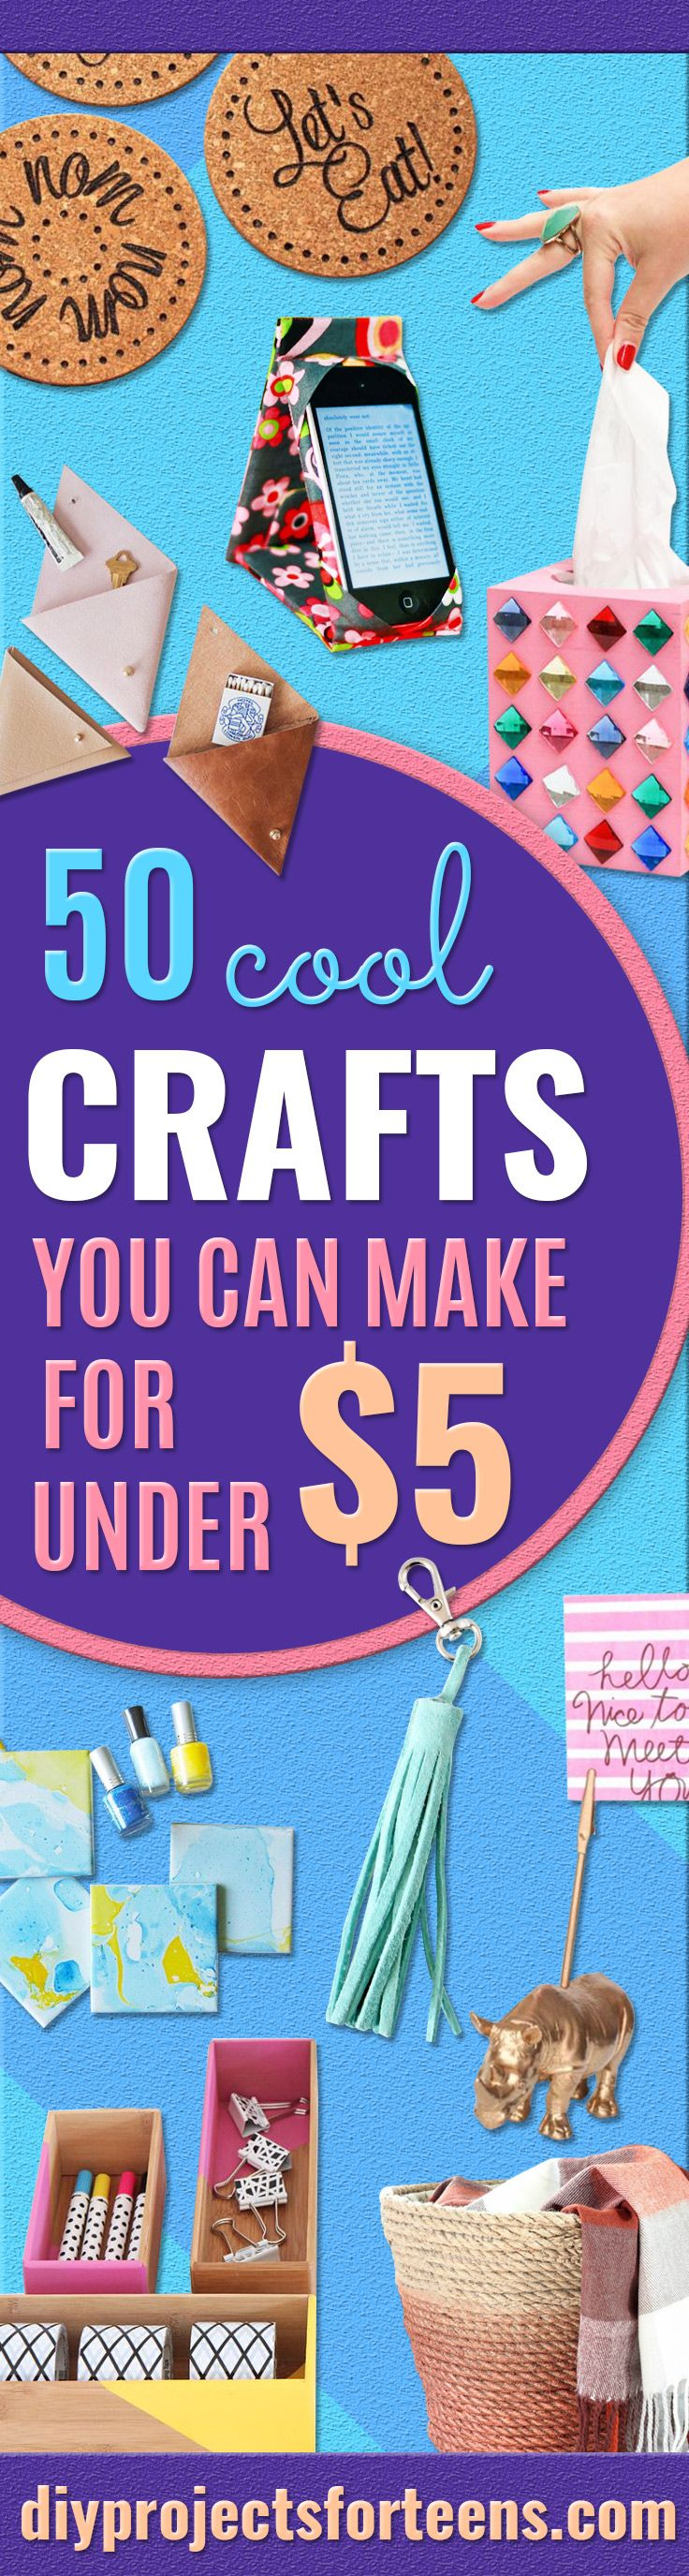 Balm christmas gift turn old eos containers into cool crafts ideas - 50 Cool Crafts You Can Make For Less Than 5